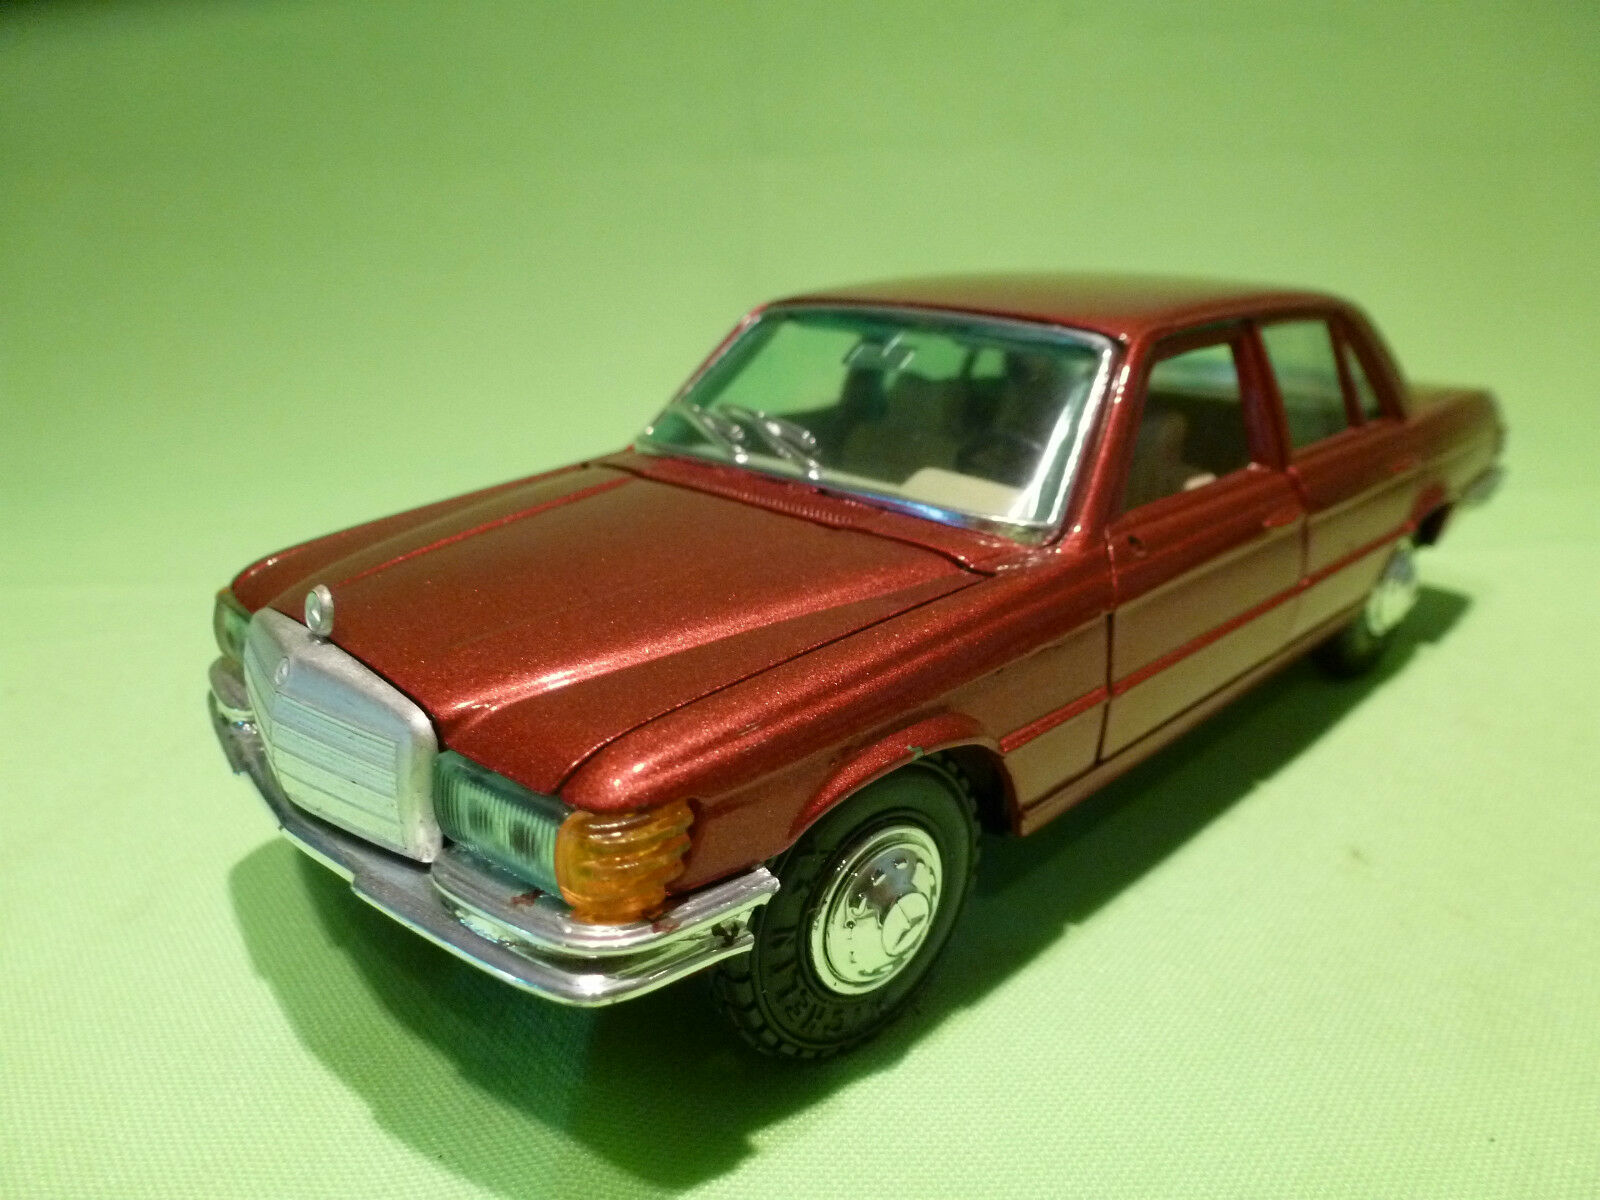 GAMA 443 MERCEDES BENZ 450 SE -  EXTREMELY RARE COLOUR- VERY GOOD CONDITION